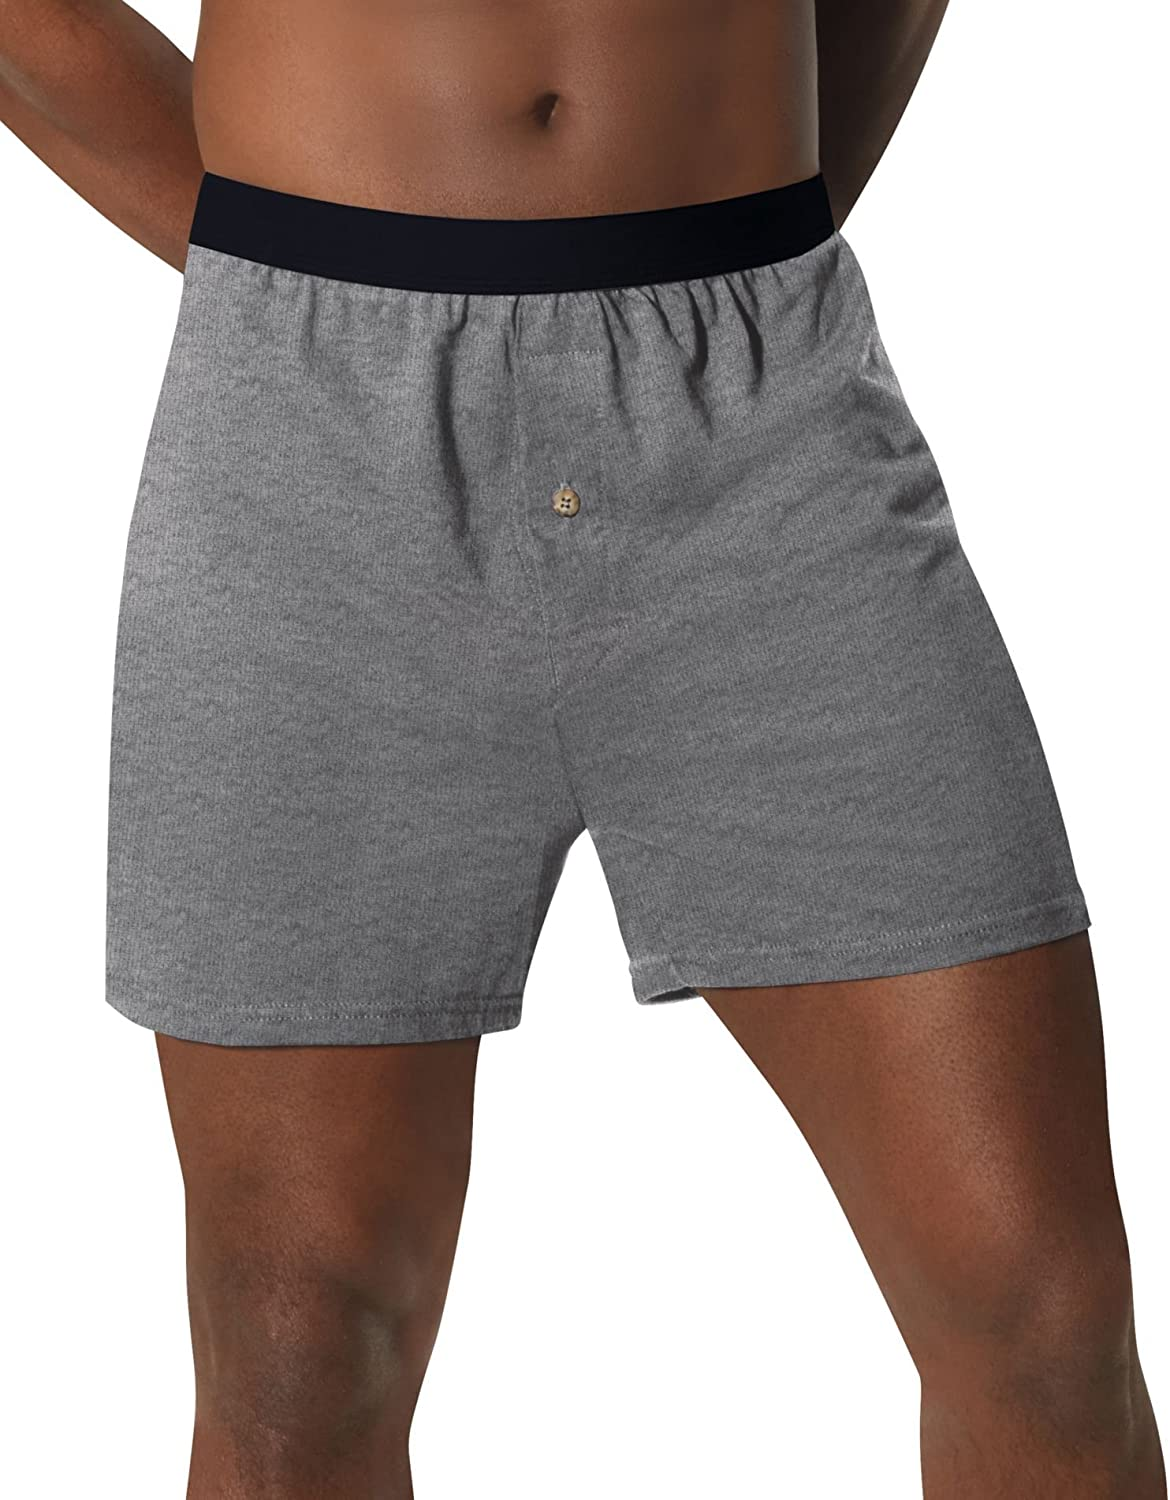 5 Hanes Men's Comfortsoft Waistband Tagless Solid Knit Boxers - Style MKCBX5